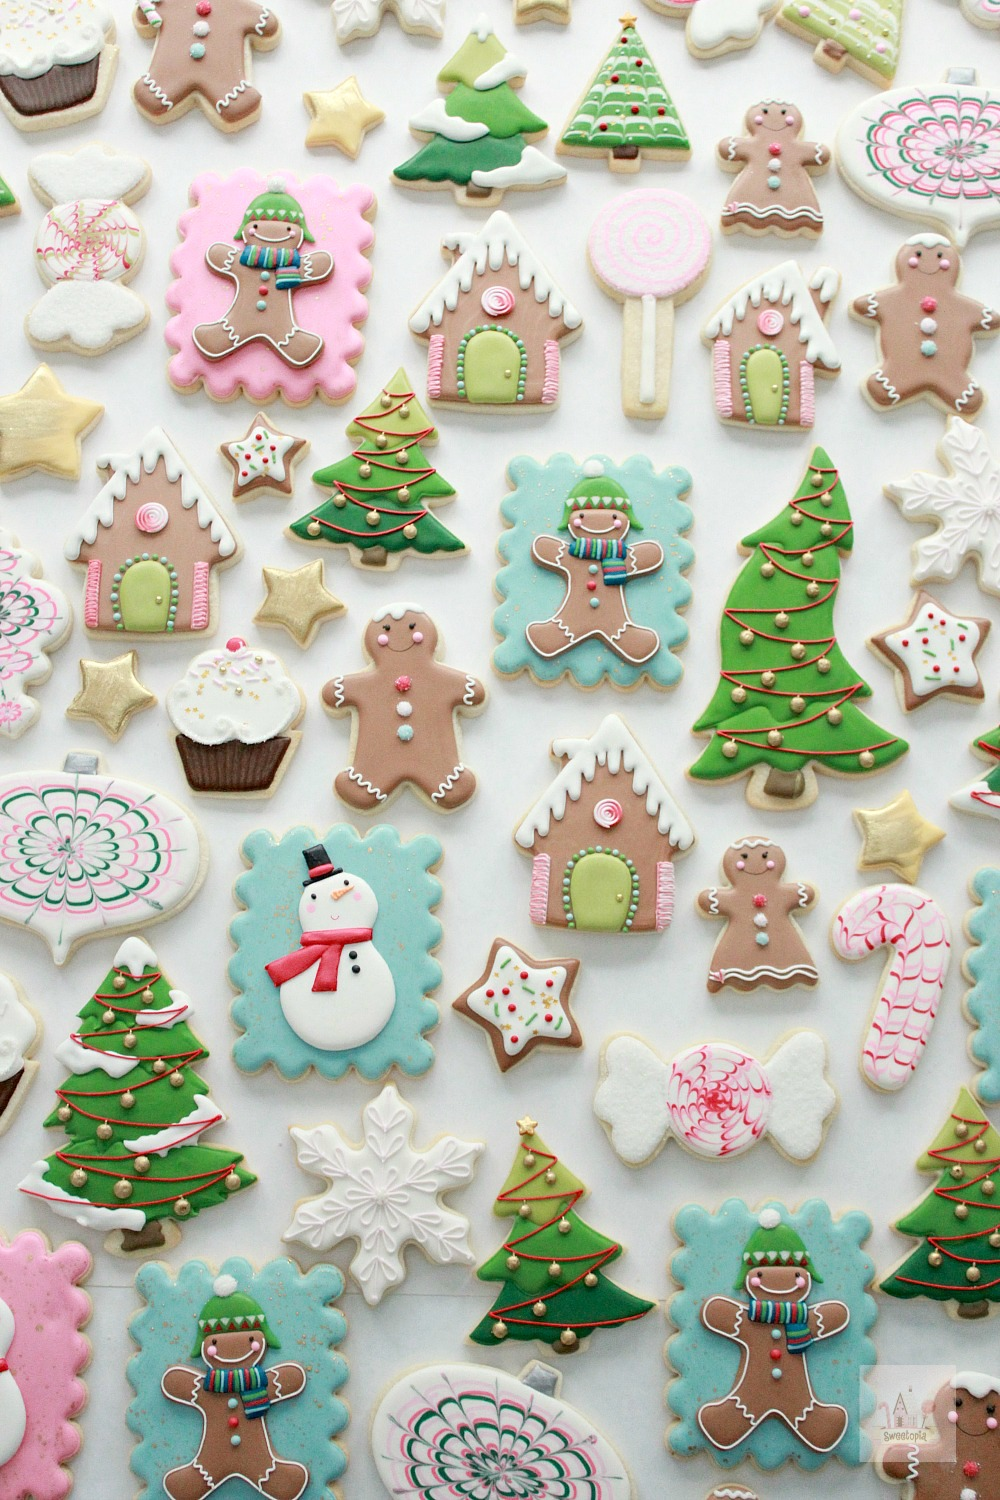 Royal Icing Cookie Decorating Tips | Sweetopia